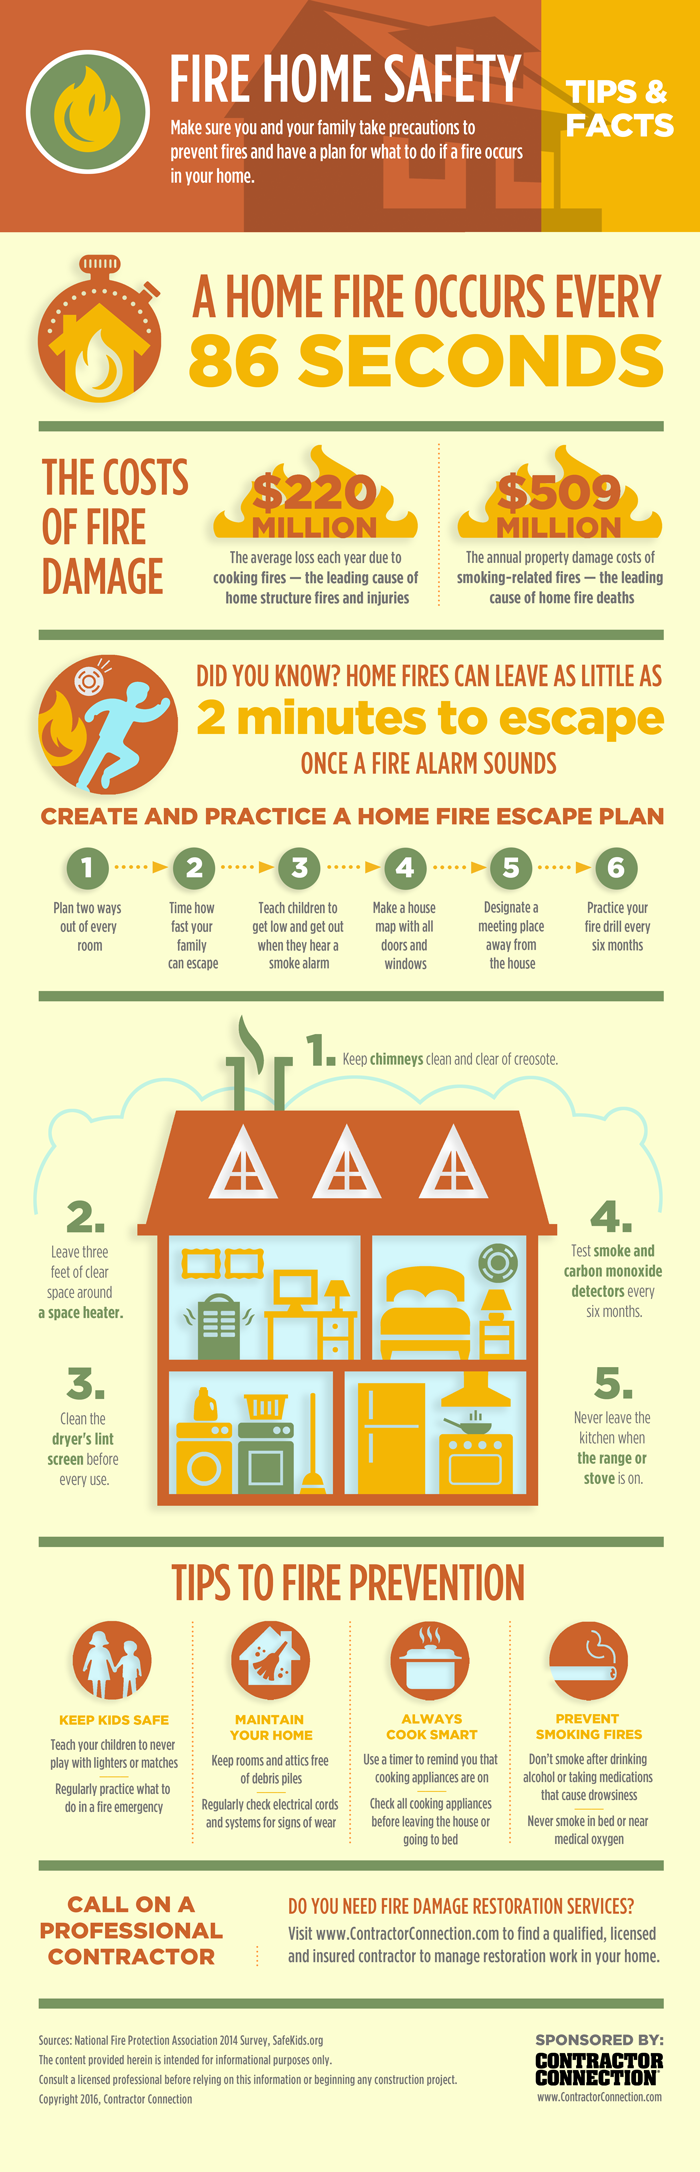 Fire Home Safety Tips & Facts #infographic